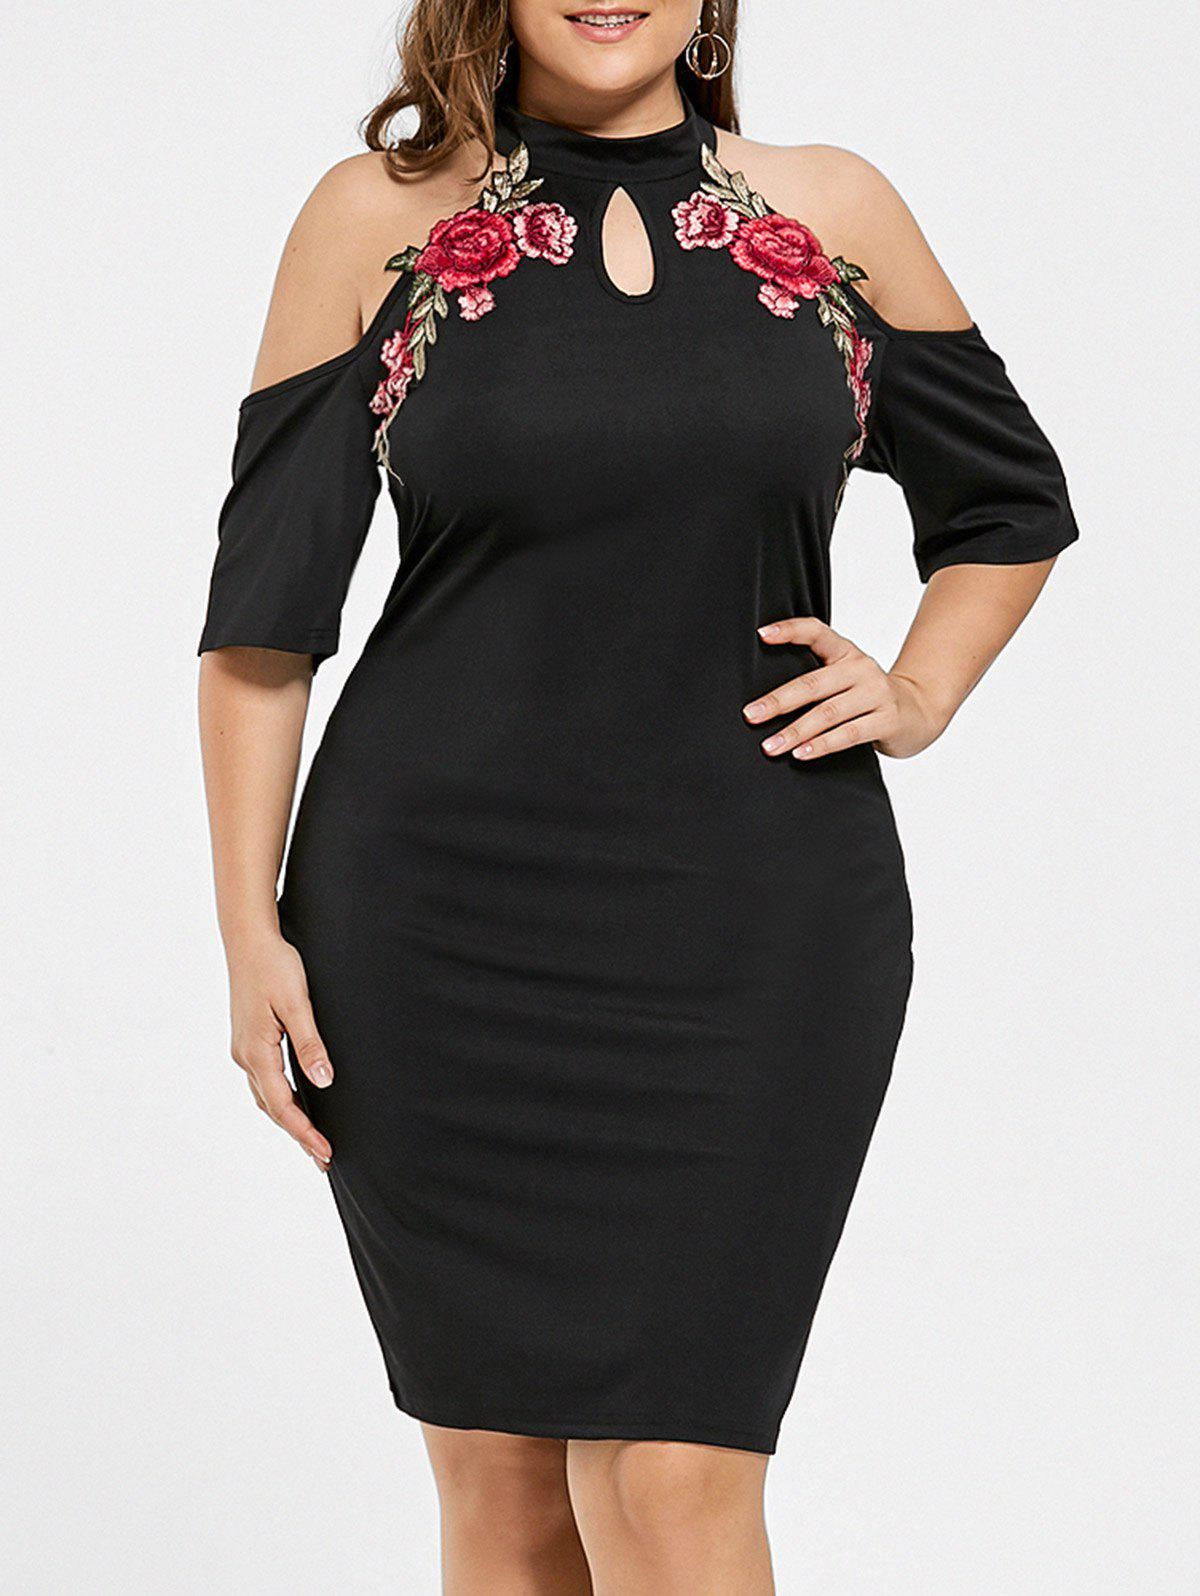 Plus Size Embroidered Cold Shoulder Keyhole DressWOMEN<br><br>Size: 3XL; Color: BLACK; Style: Club; Material: Cotton,Polyester; Silhouette: Bodycon; Dresses Length: Knee-Length; Neckline: Keyhole Neck; Sleeve Length: Short Sleeves; Embellishment: Appliques; Pattern Type: Floral; Elasticity: Elastic; With Belt: No; Season: Fall,Spring,Summer; Weight: 0.3700kg; Package Contents: 1 x Dress;